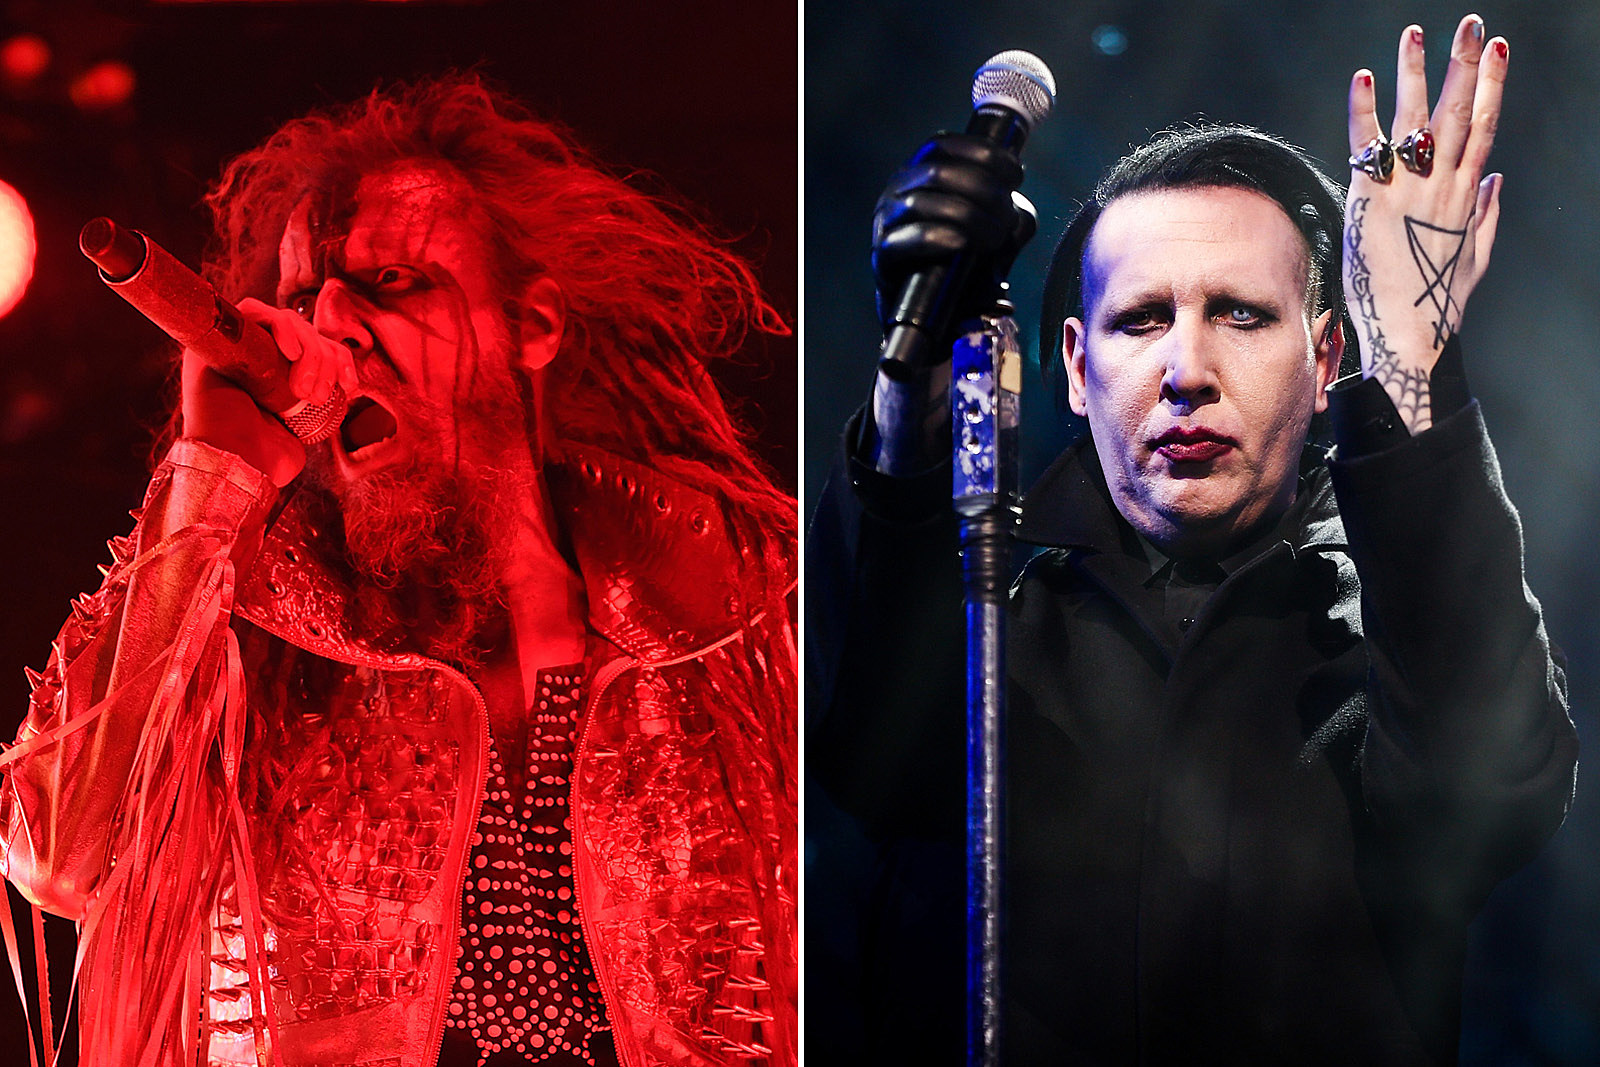 Twins Of Evil Tour 2020.Marilyn Manson And Rob Zombie Announce New Twins Of Evil Tour